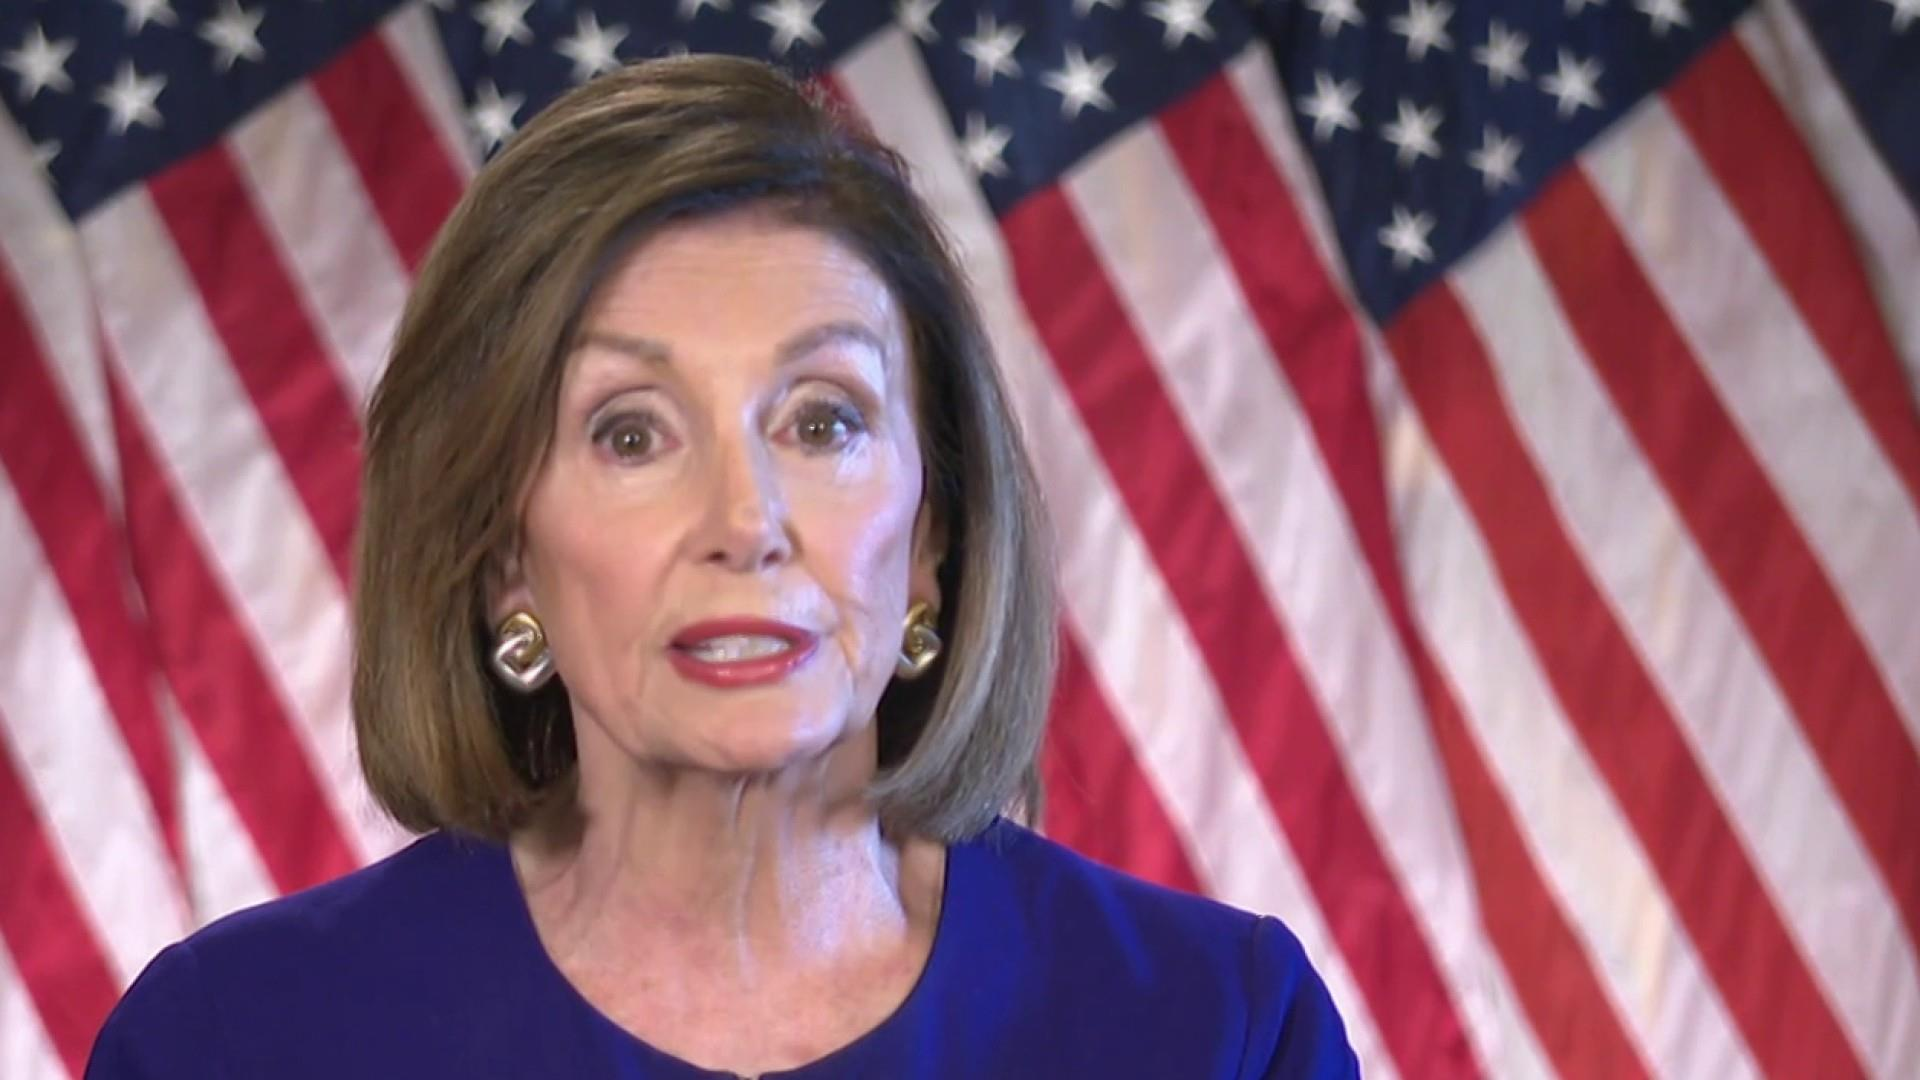 'No choice': How Pelosi went from blocking impeachment to going after Trump on Ukraine